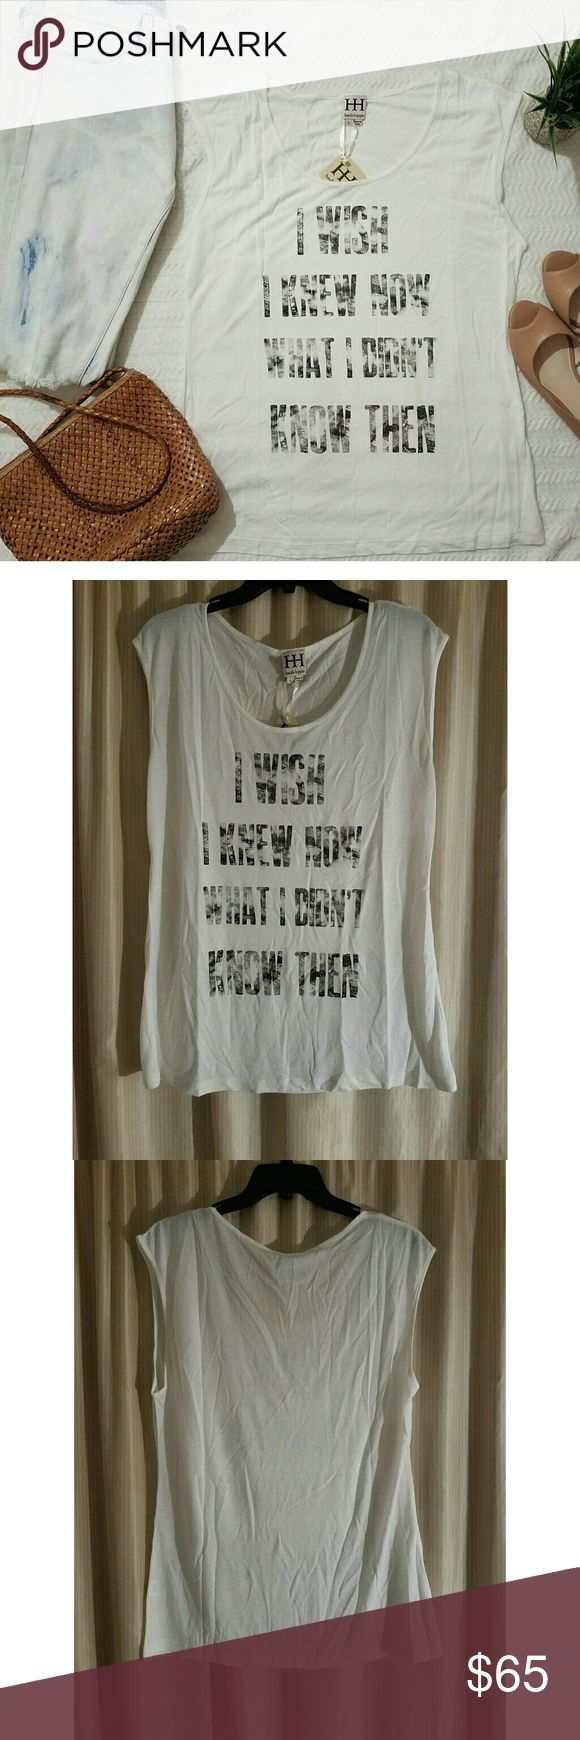 """Cap sleeve Tee by haute hippie **Brand New** boyfriend t-shirt by haute hippie with the saying, """"I wish I knew now what I didn't know then."""" Shirt color is Swan (ivory/off white) with black faded lettering. 100% modal, size large. Shirt will look awesome with some skinny jeans in my closet. Get your bundle deal today! Haute Hippie Tops Tees - Short Sleeve"""